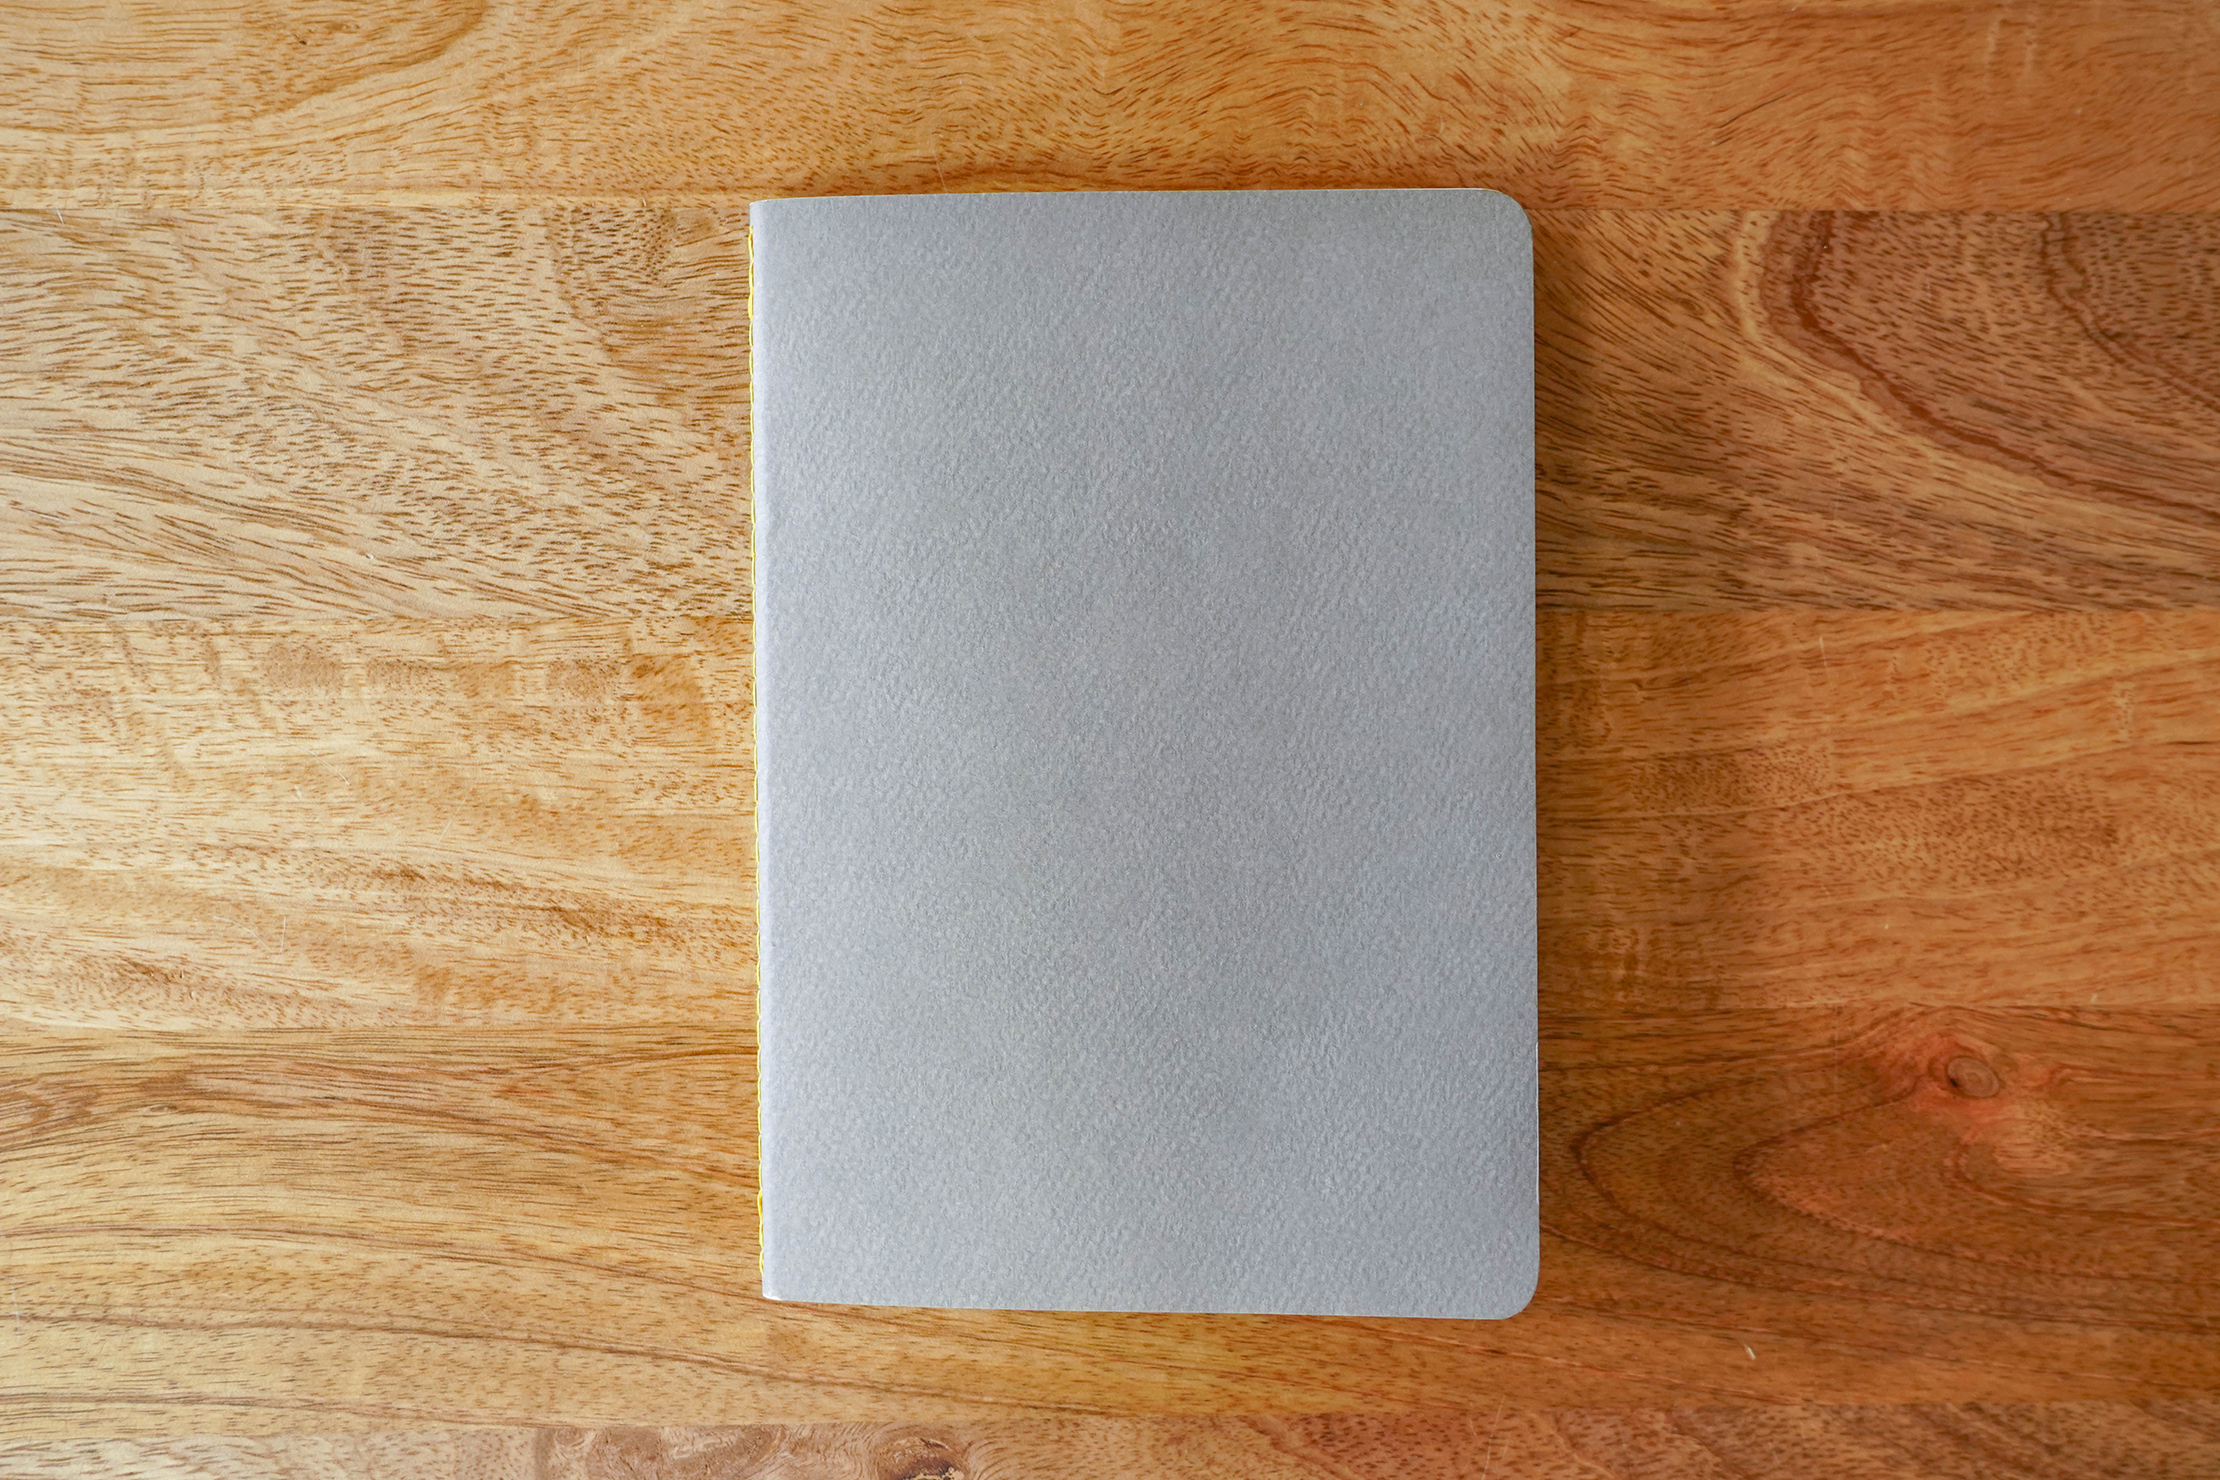 Baron Fig Vanguard Softcover Notebook On A Desk